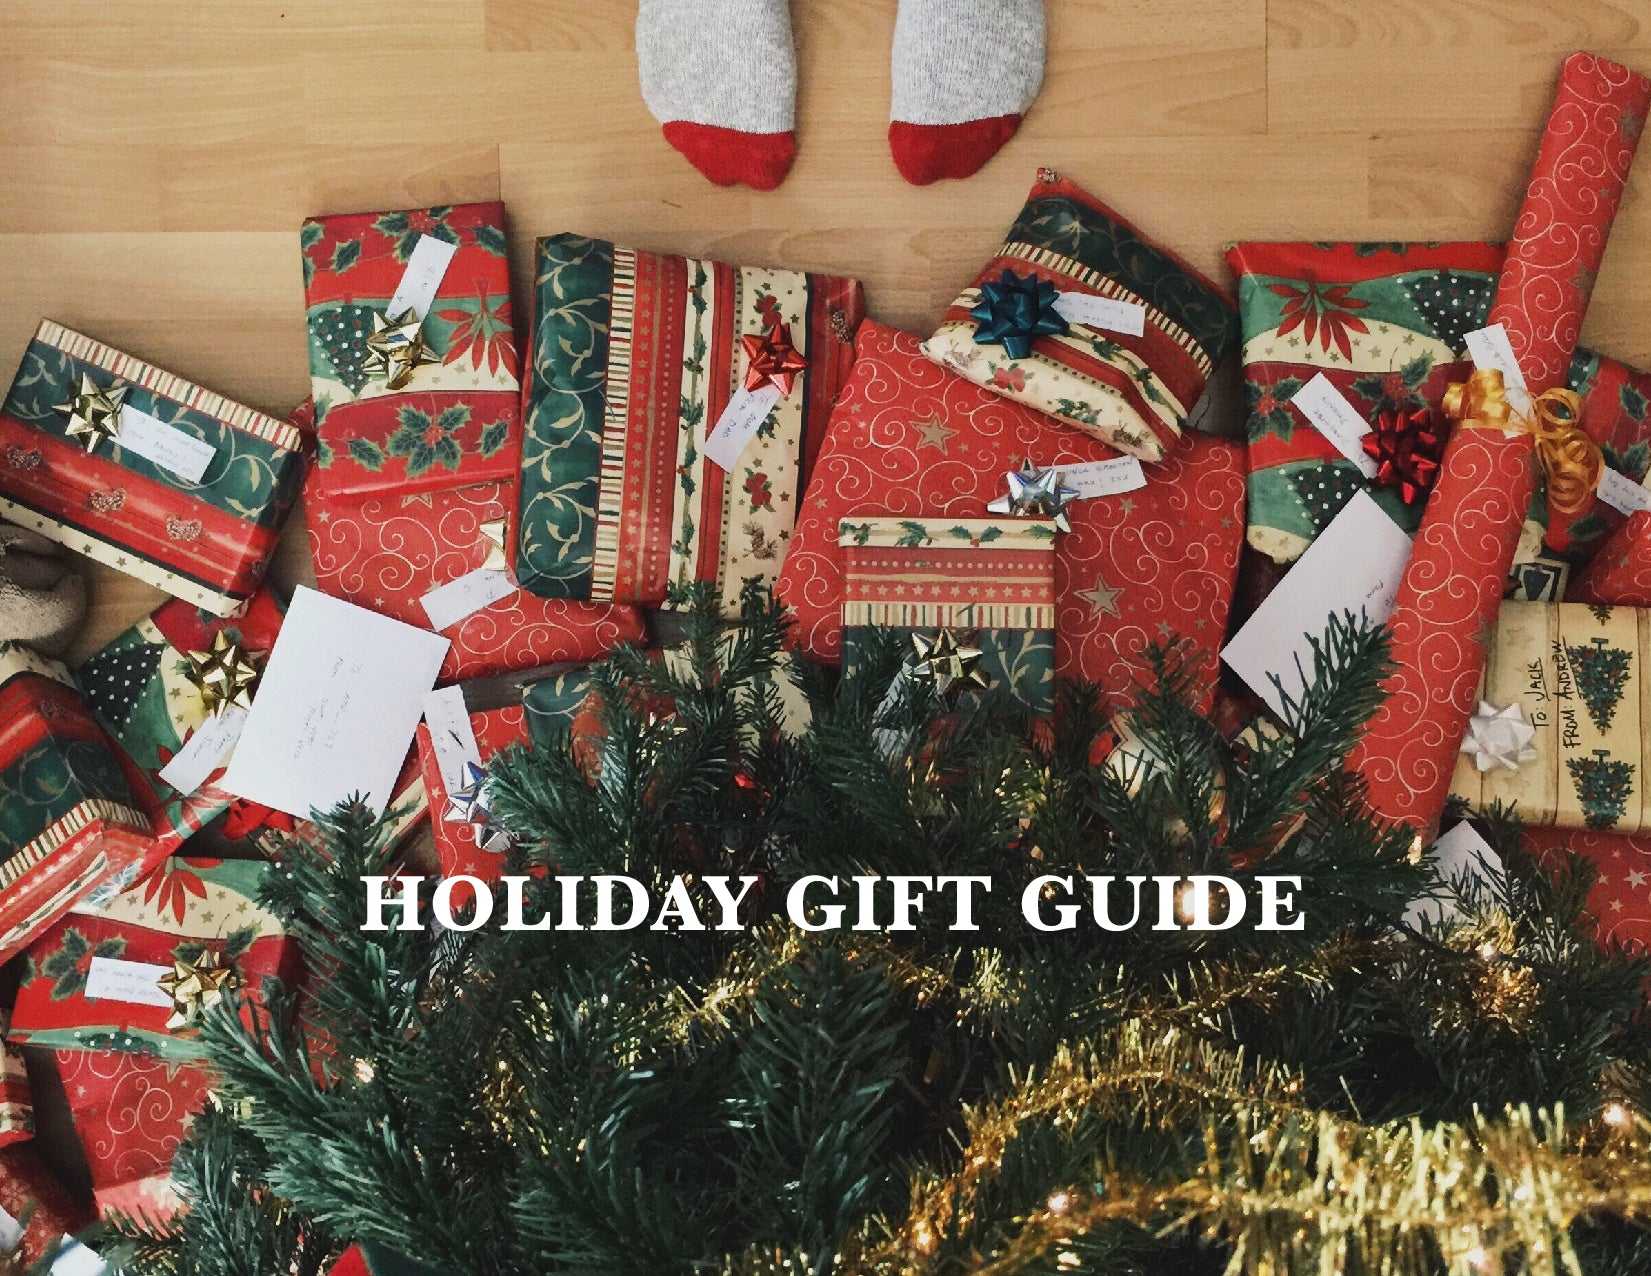 Holiday Gift Guide 2017 | Shop Small | Christmas Gift Ideas